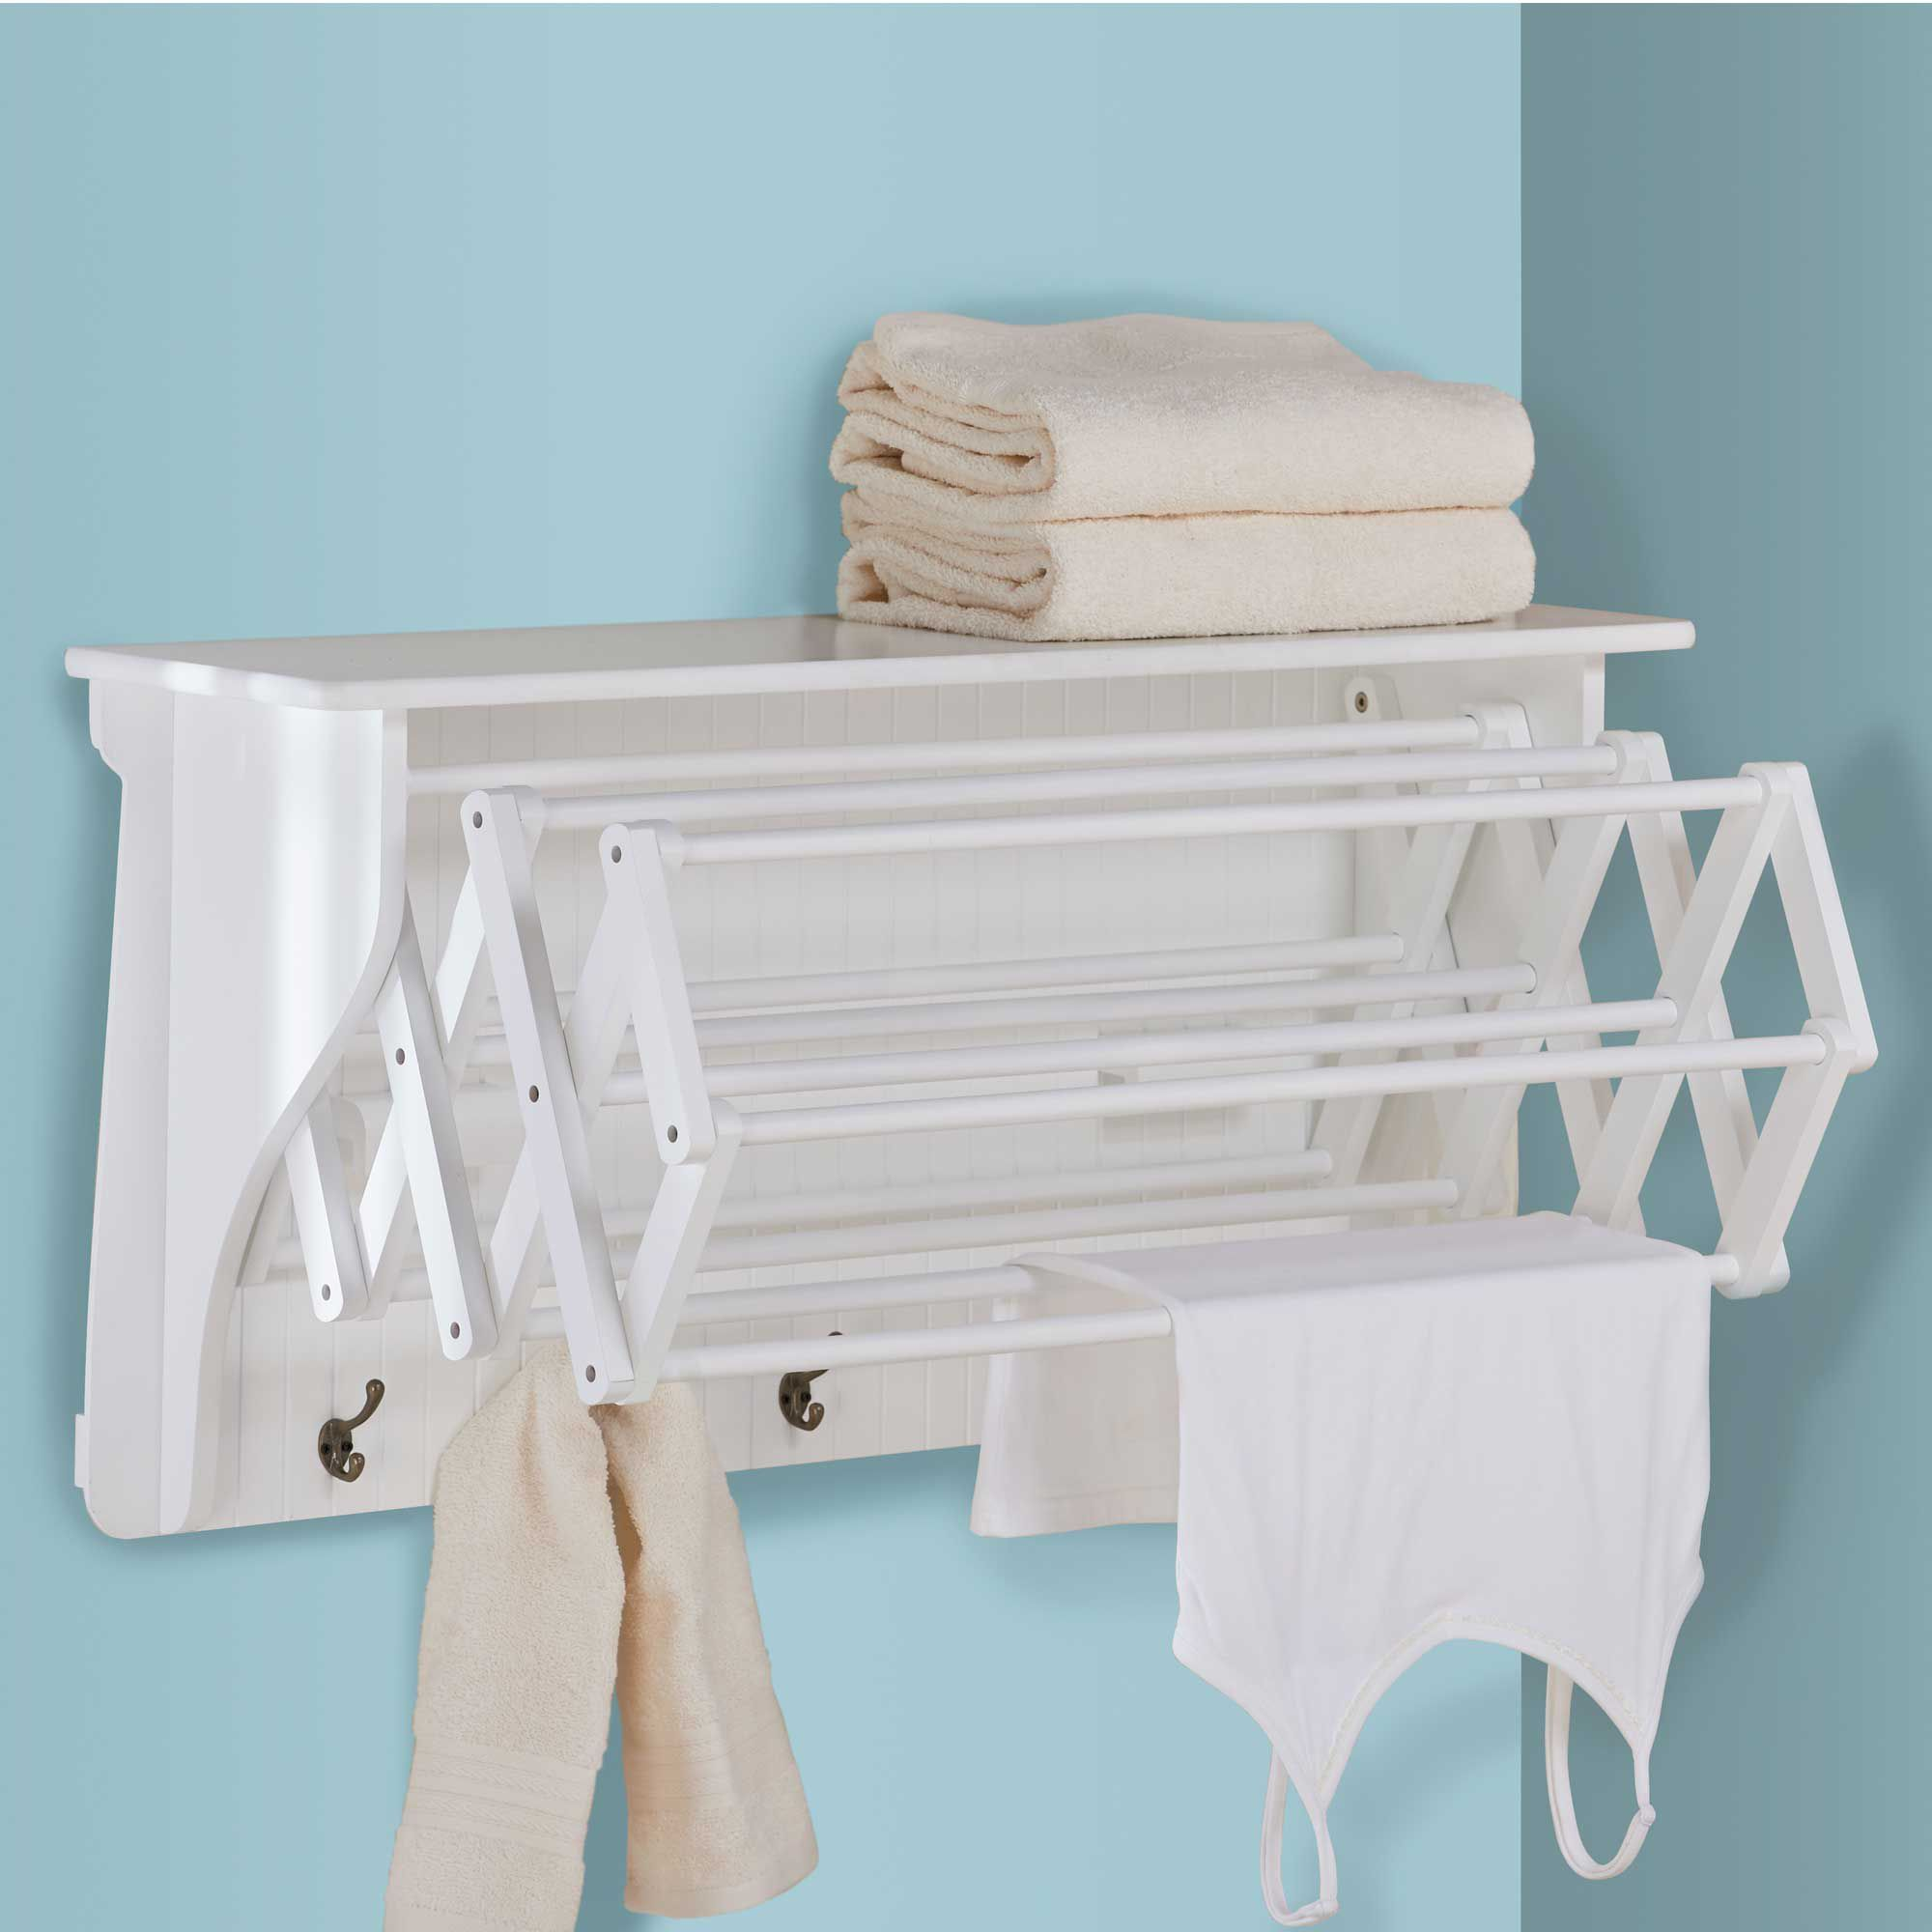 Accordion Drying Rack - Improvements